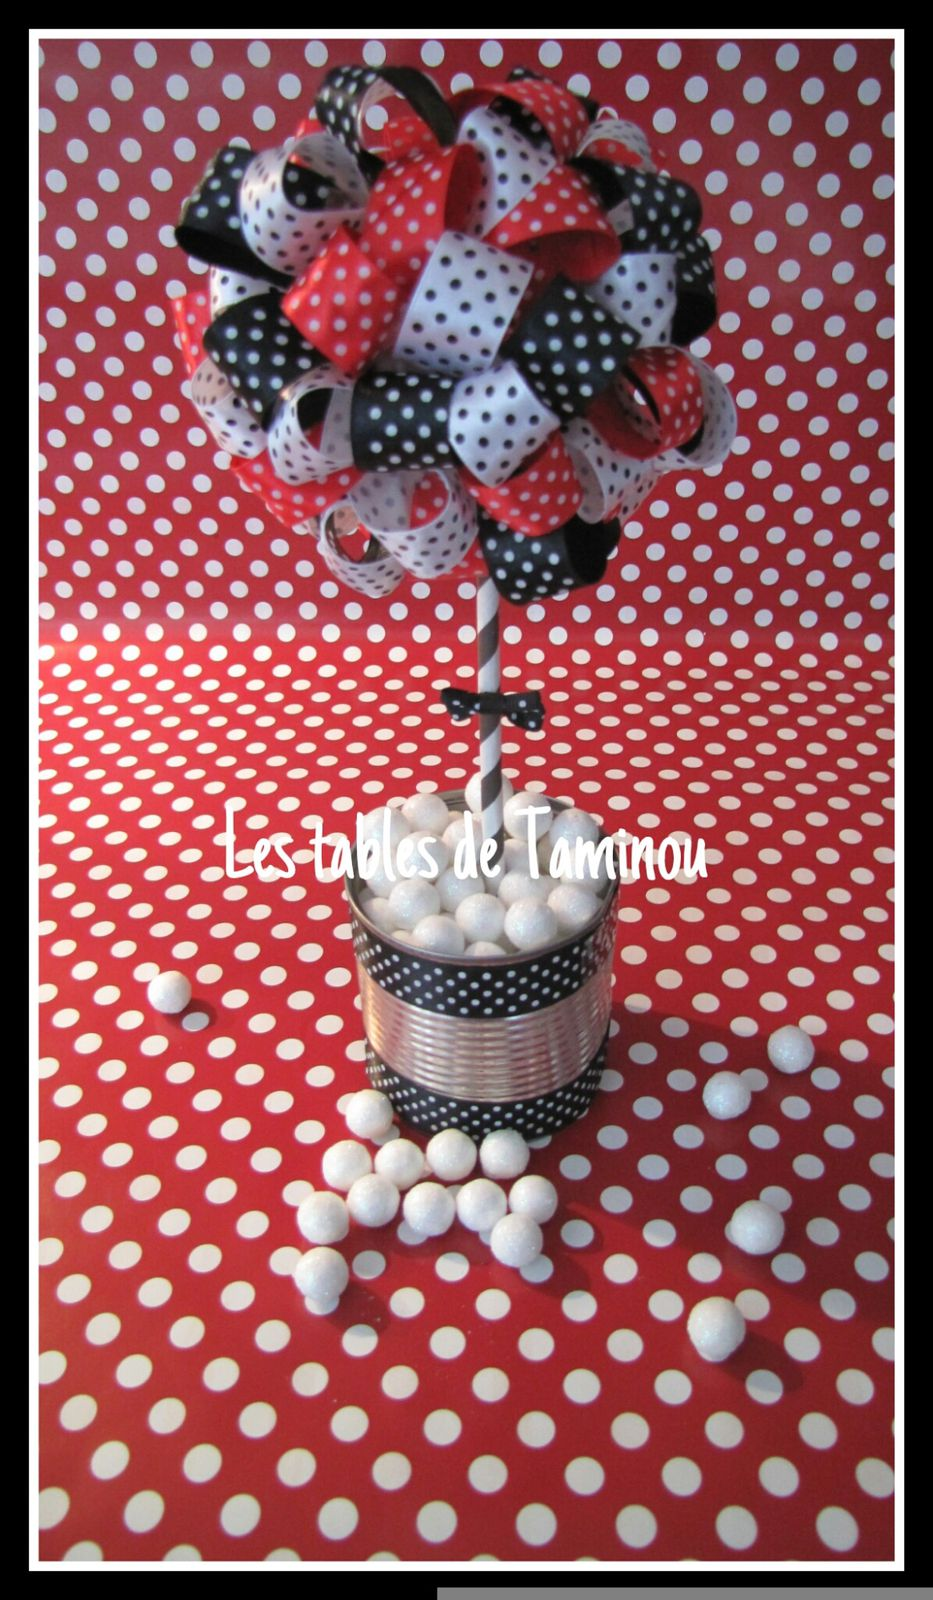 Arbre à ruban pour vos sweets table et baby showers...